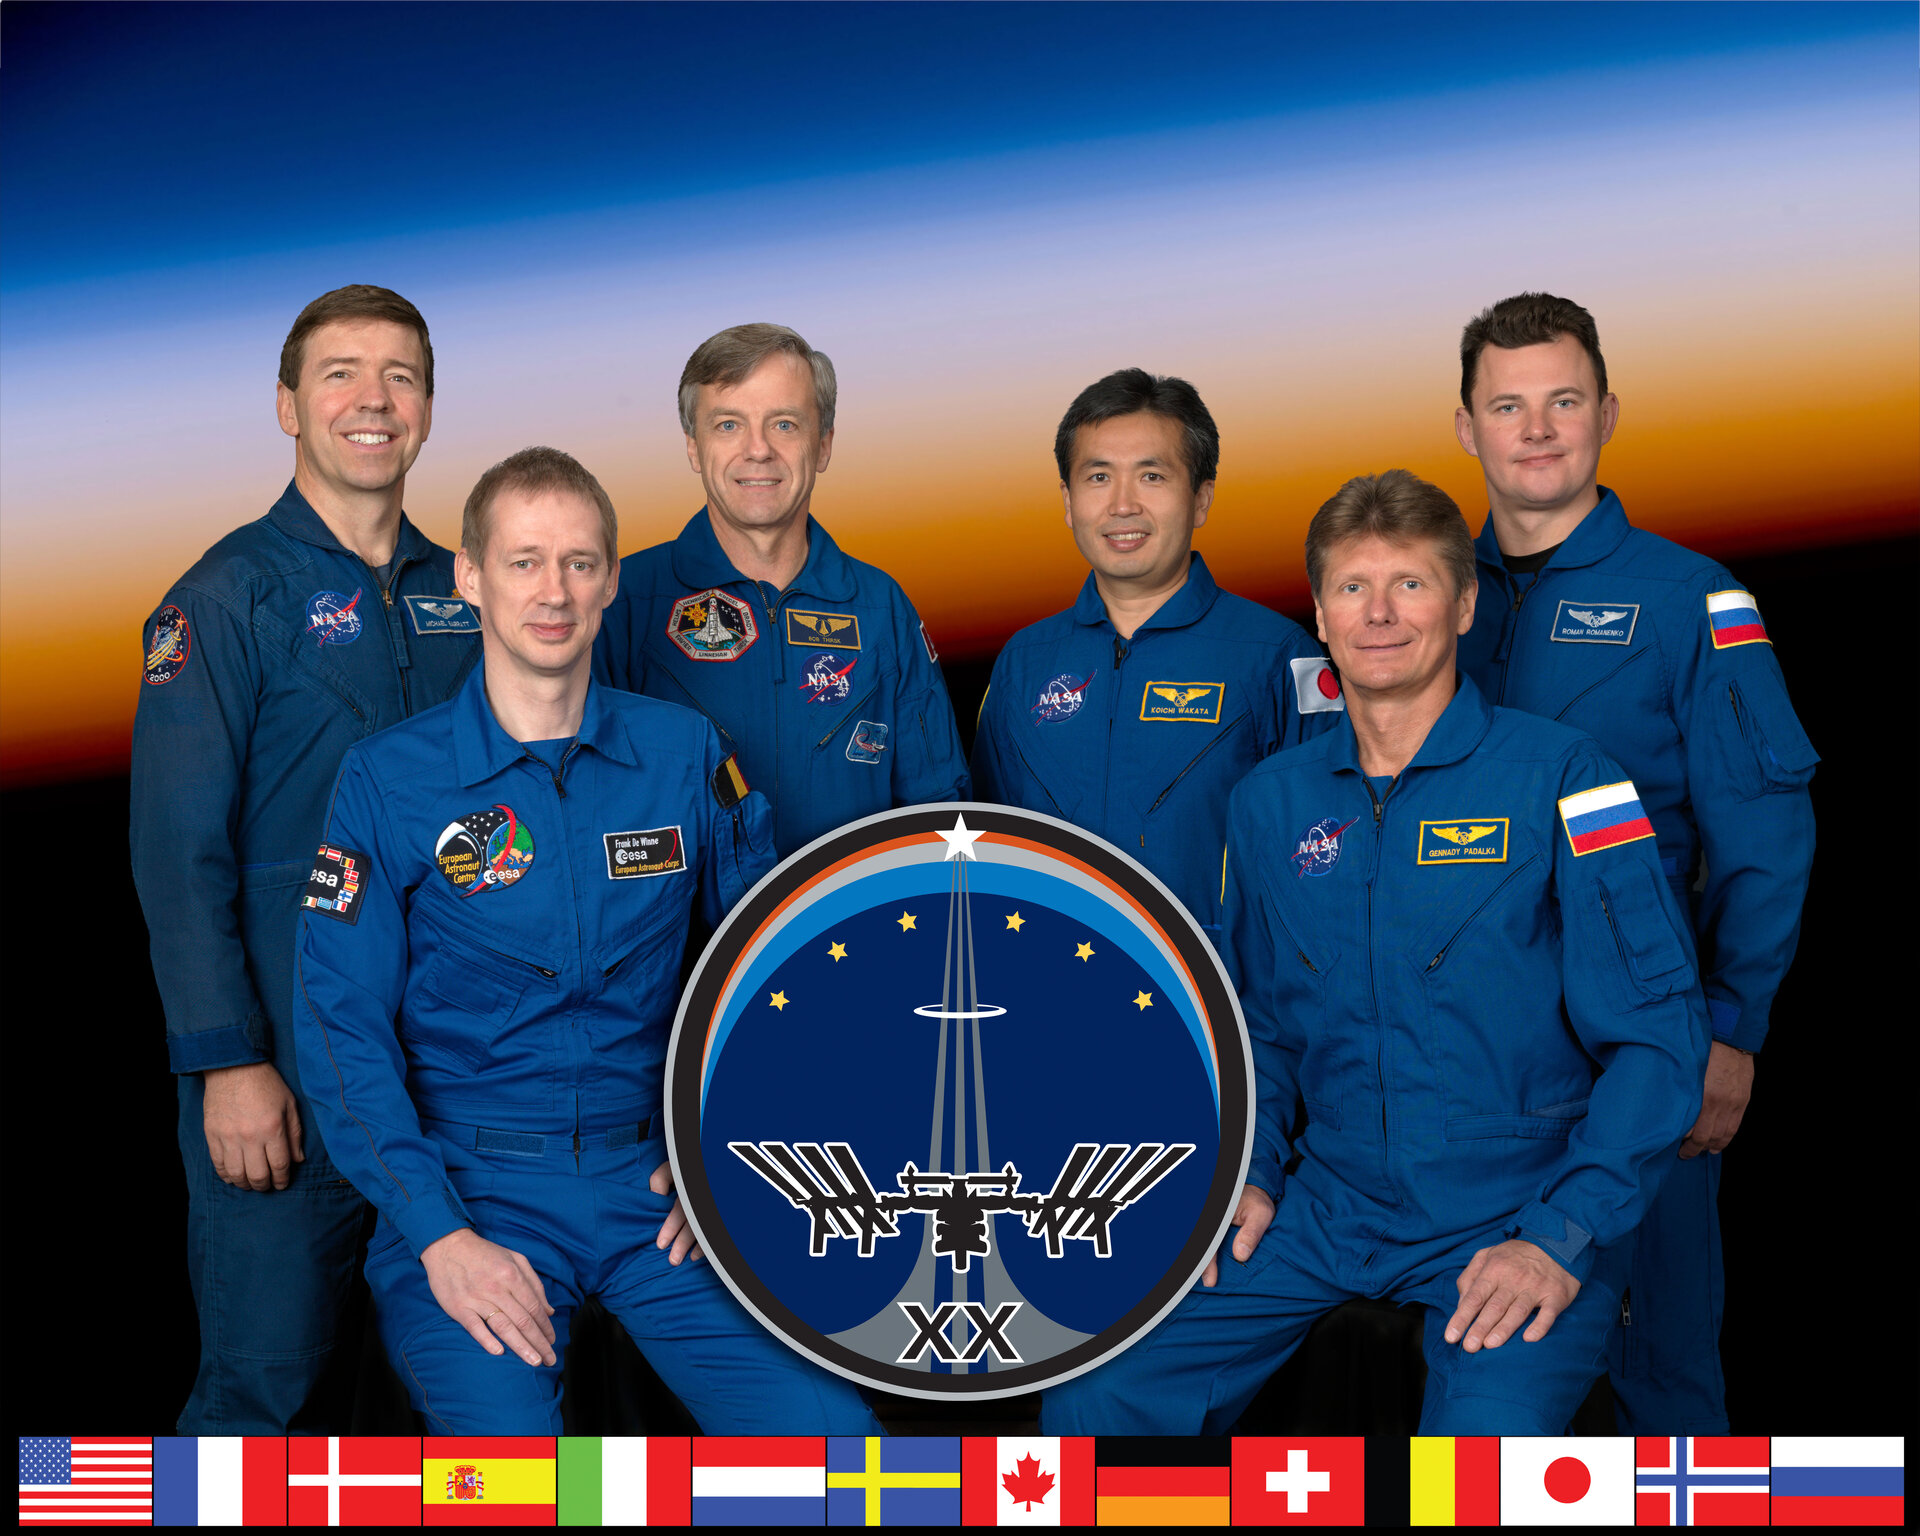 All six members of the Expedition 20 crew will participate in the crew news conference on 1 June